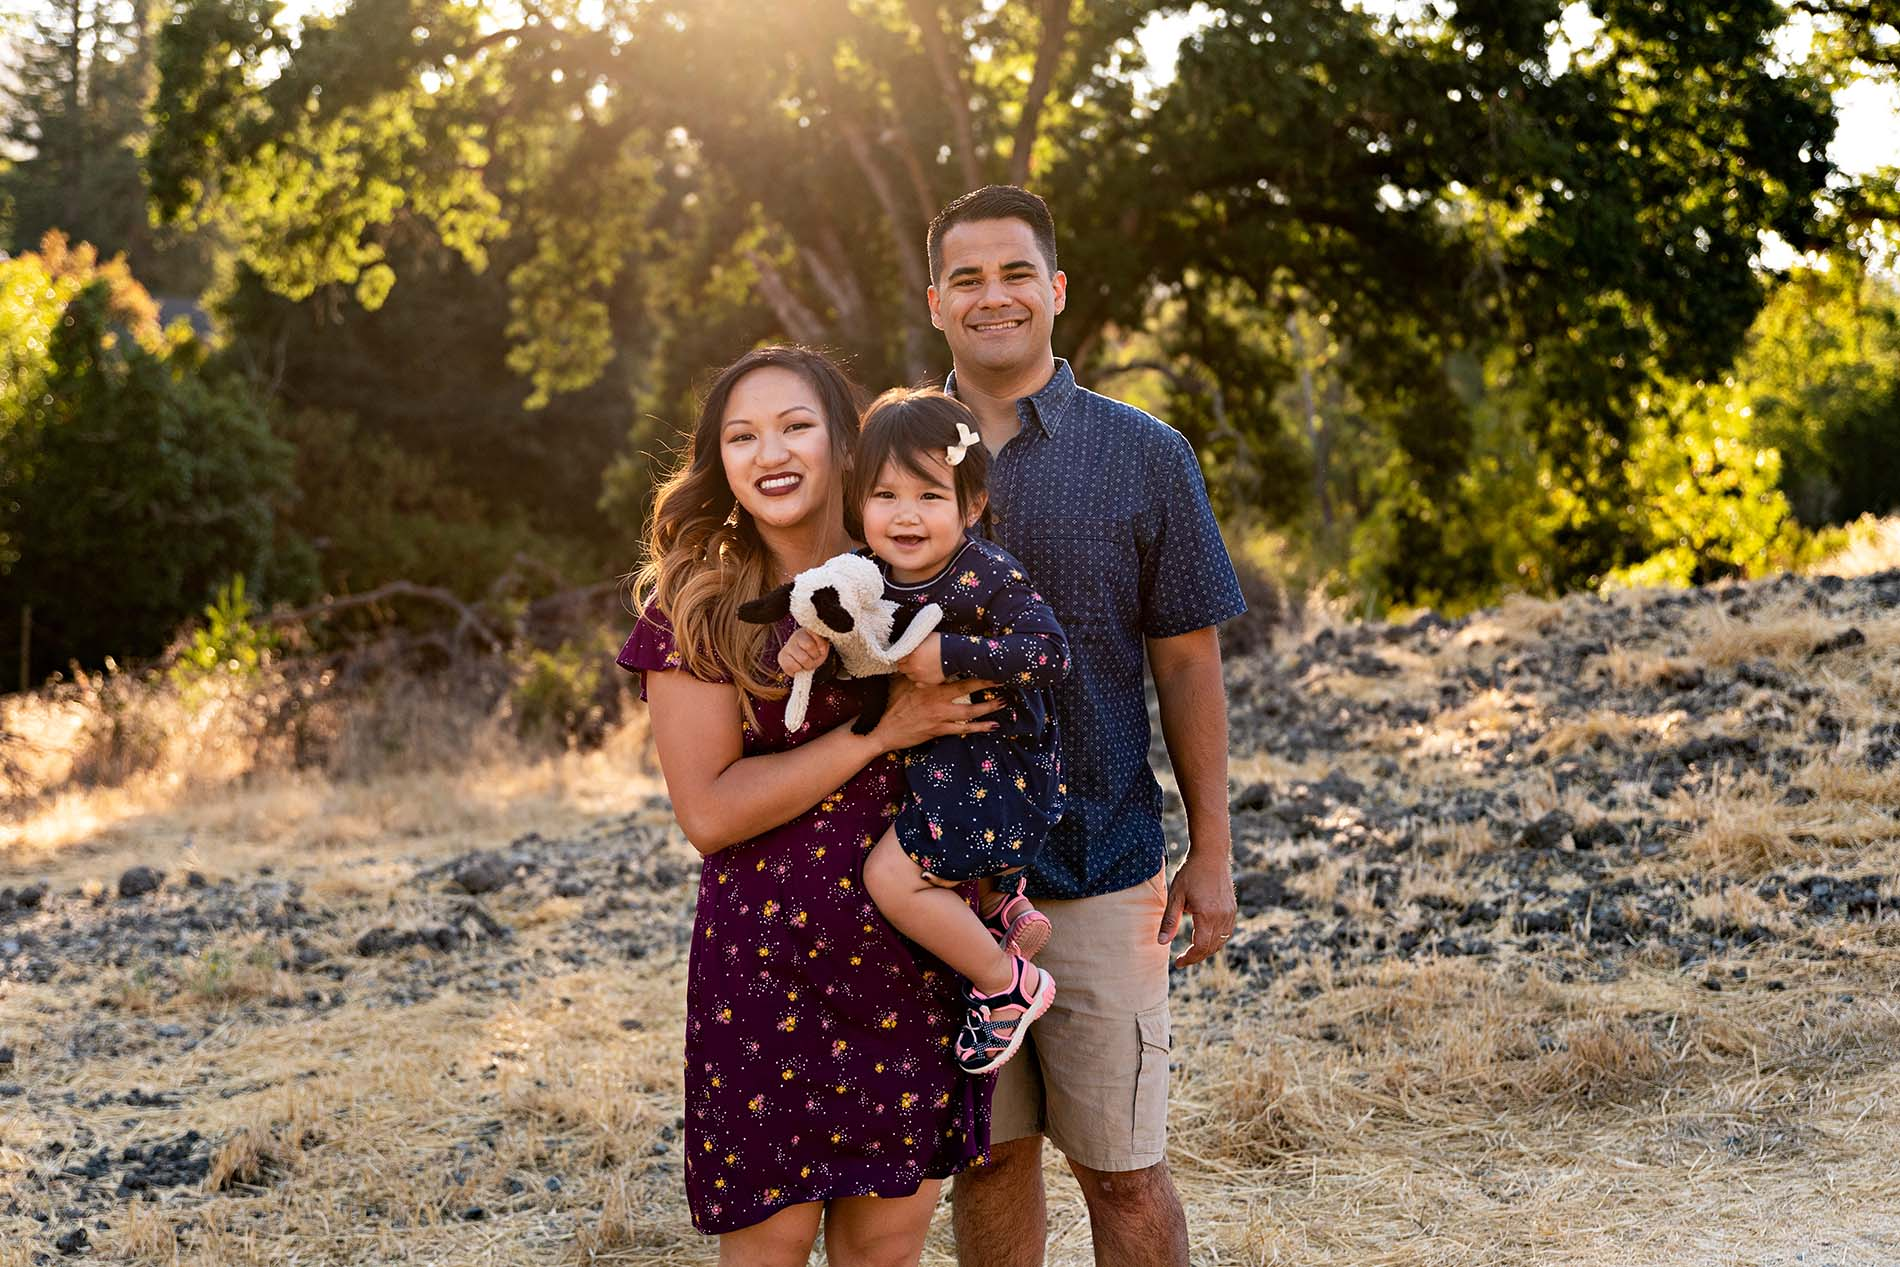 sharon kenney family photography smiles